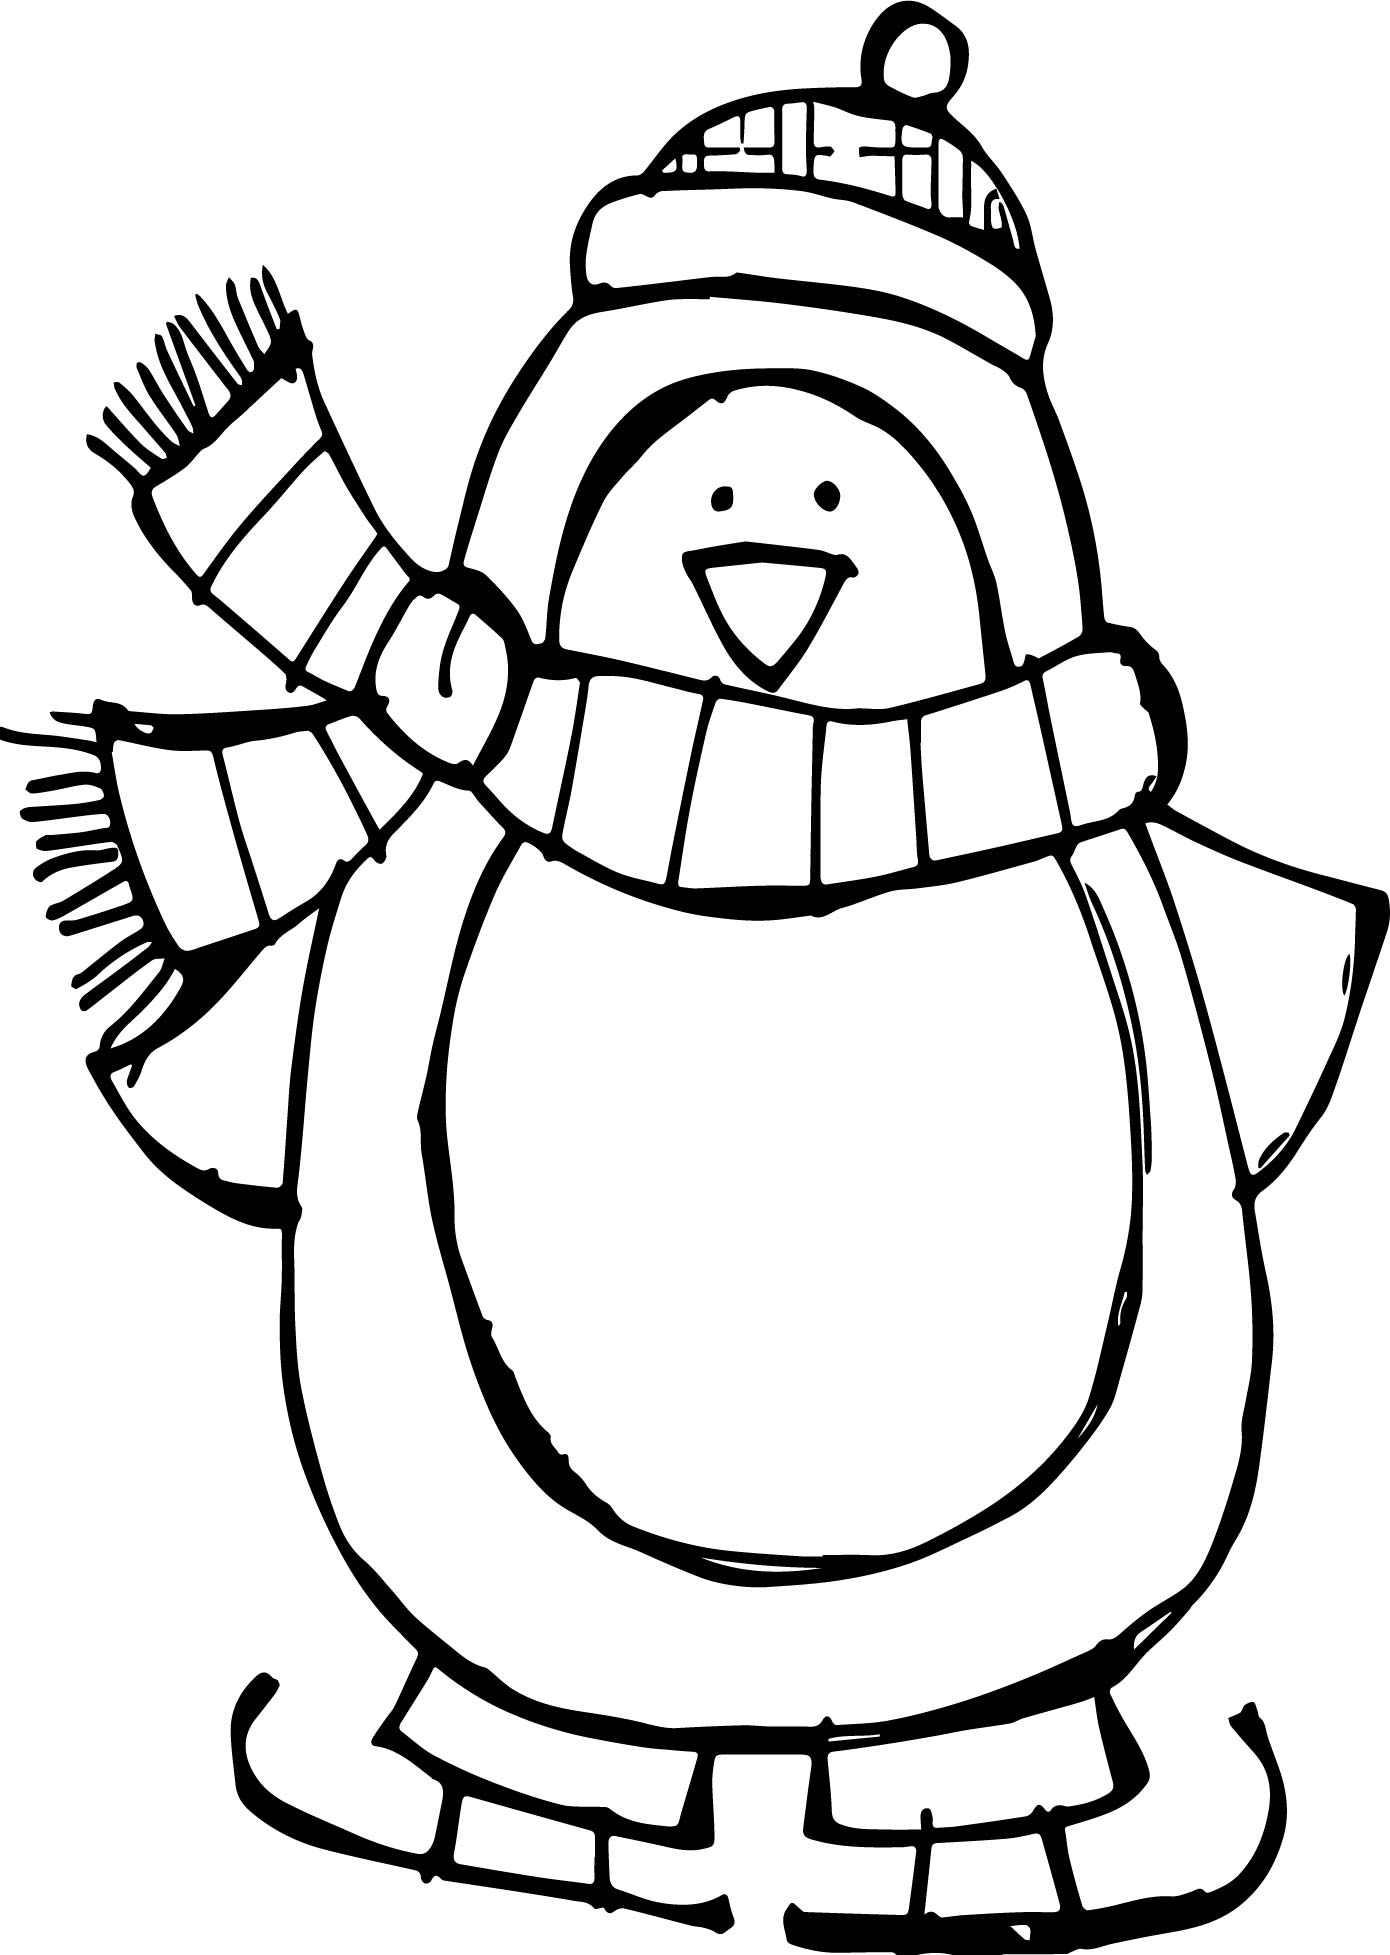 Winter Basic Penguin Coloring Page Wecoloringpage Penguin Coloring Pages